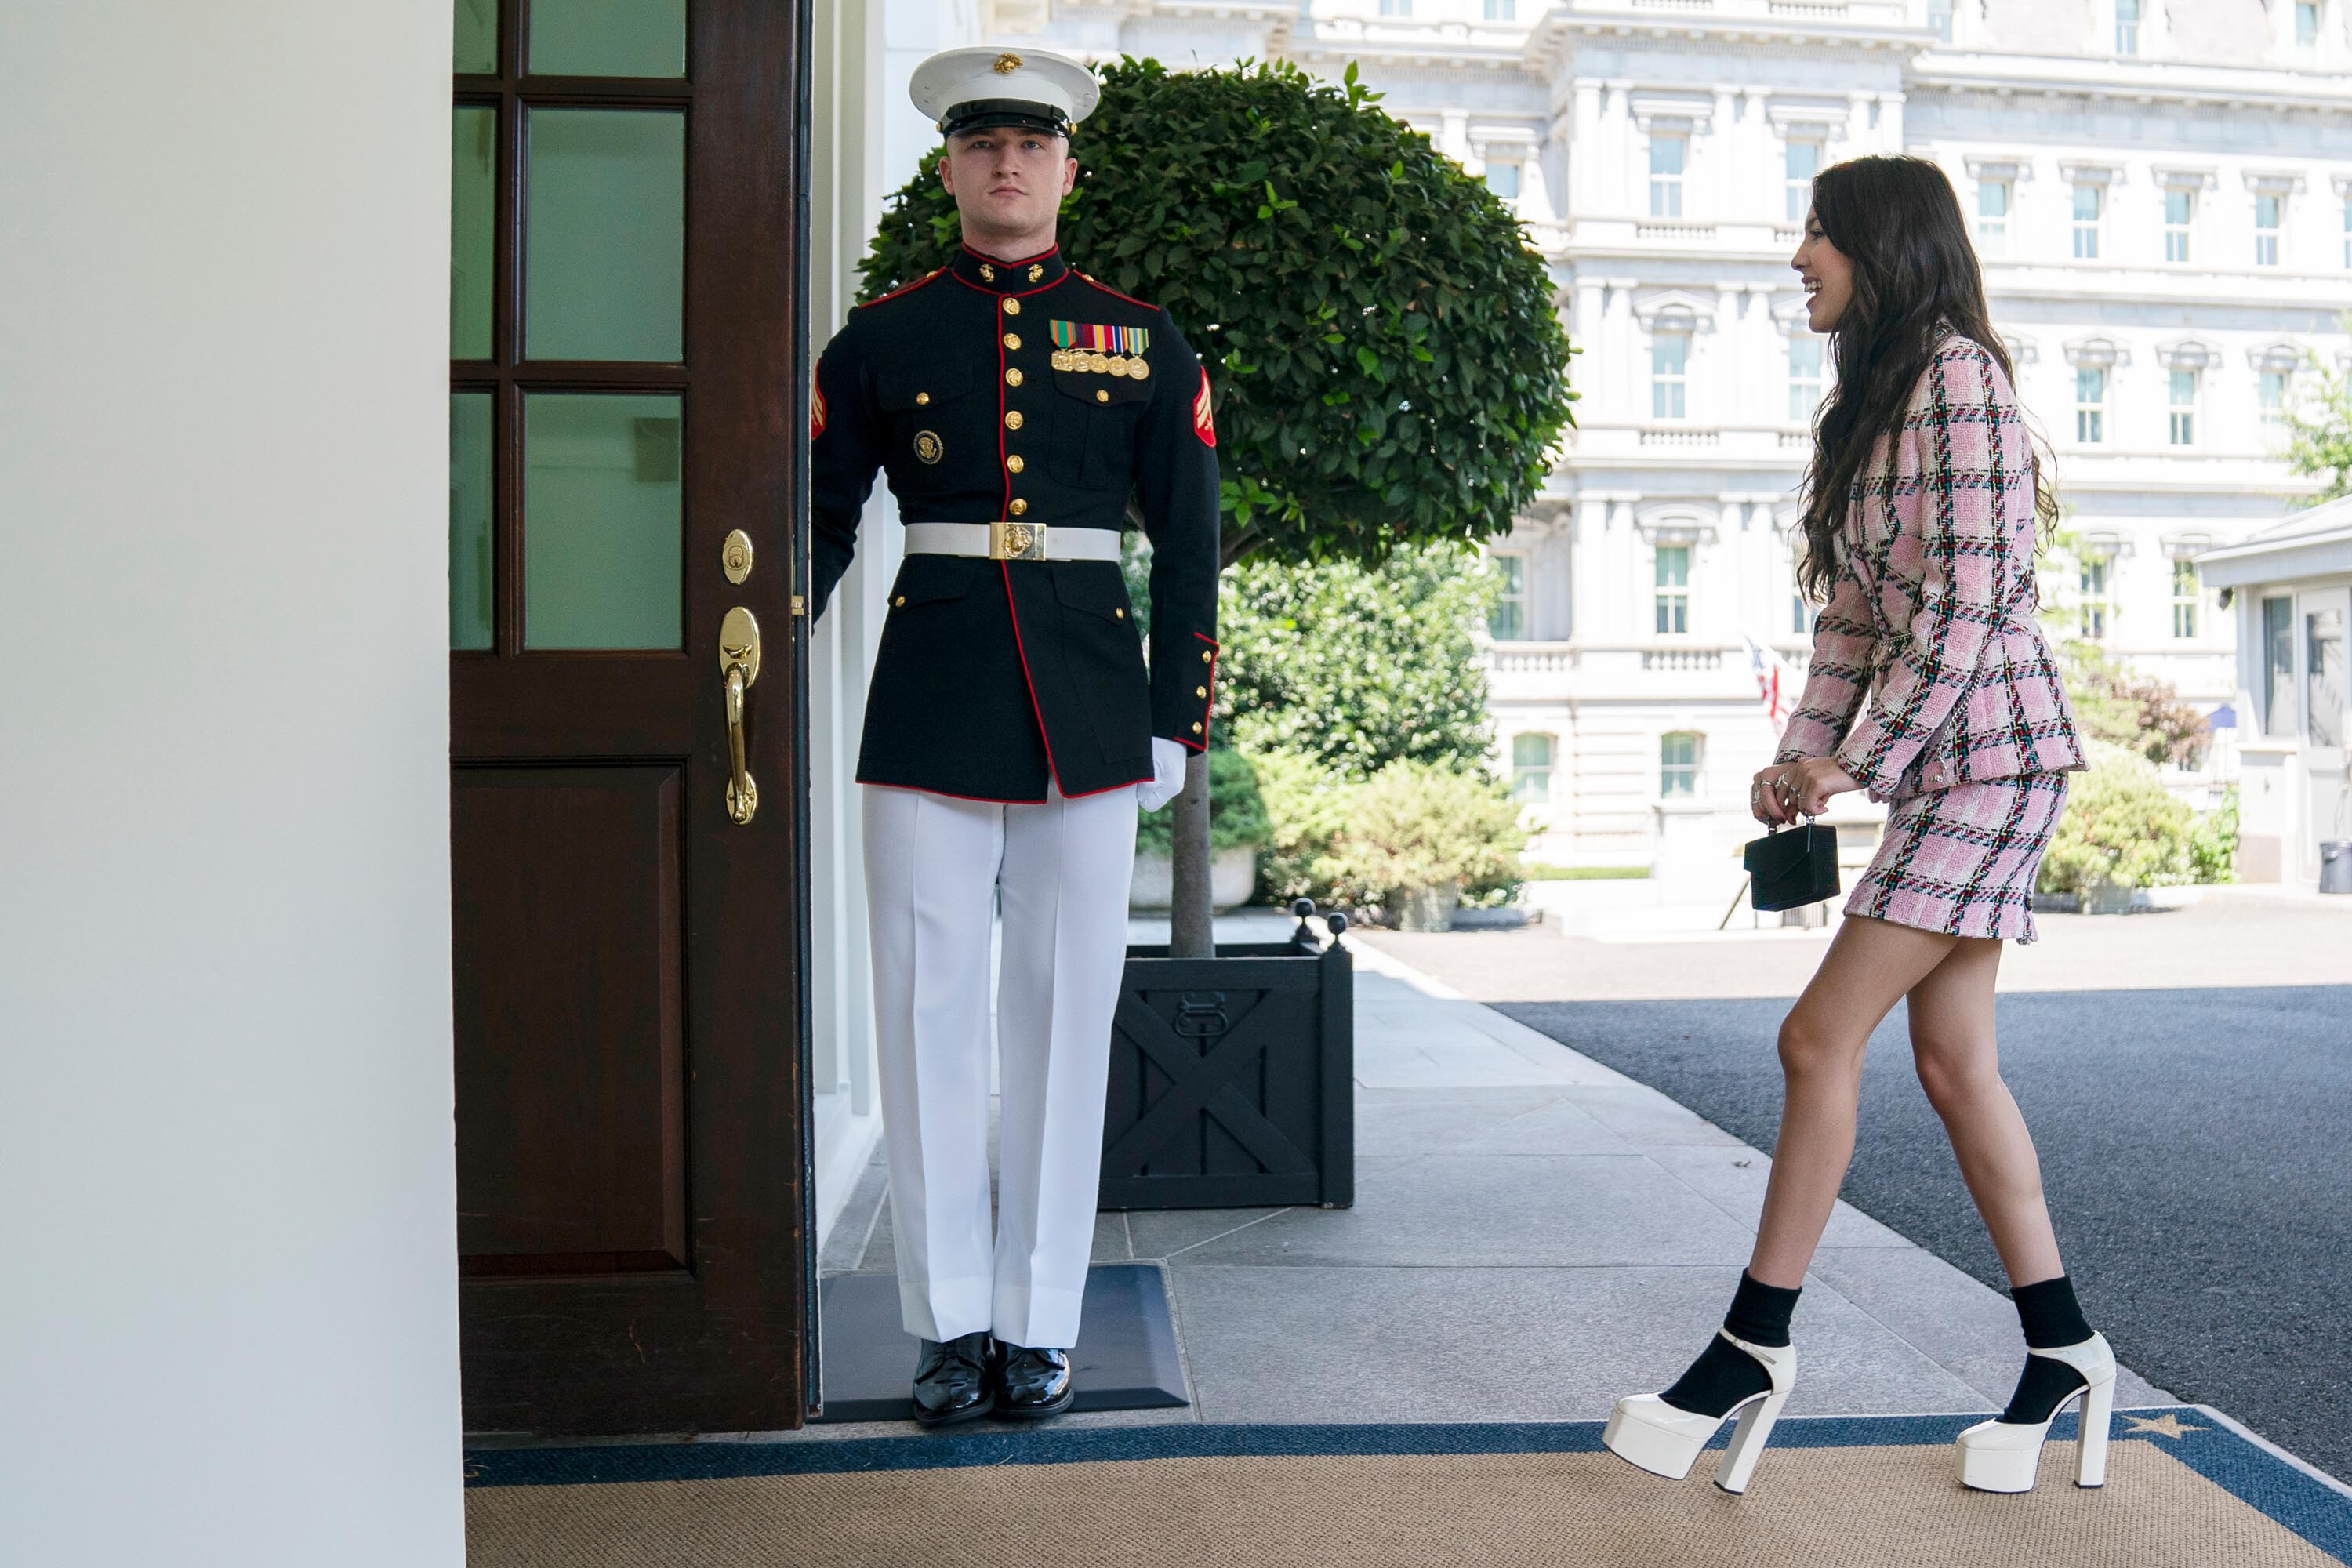 Pop star Olivia Rodrigo visits White House to urge young people to get vaccinated against Covid-19